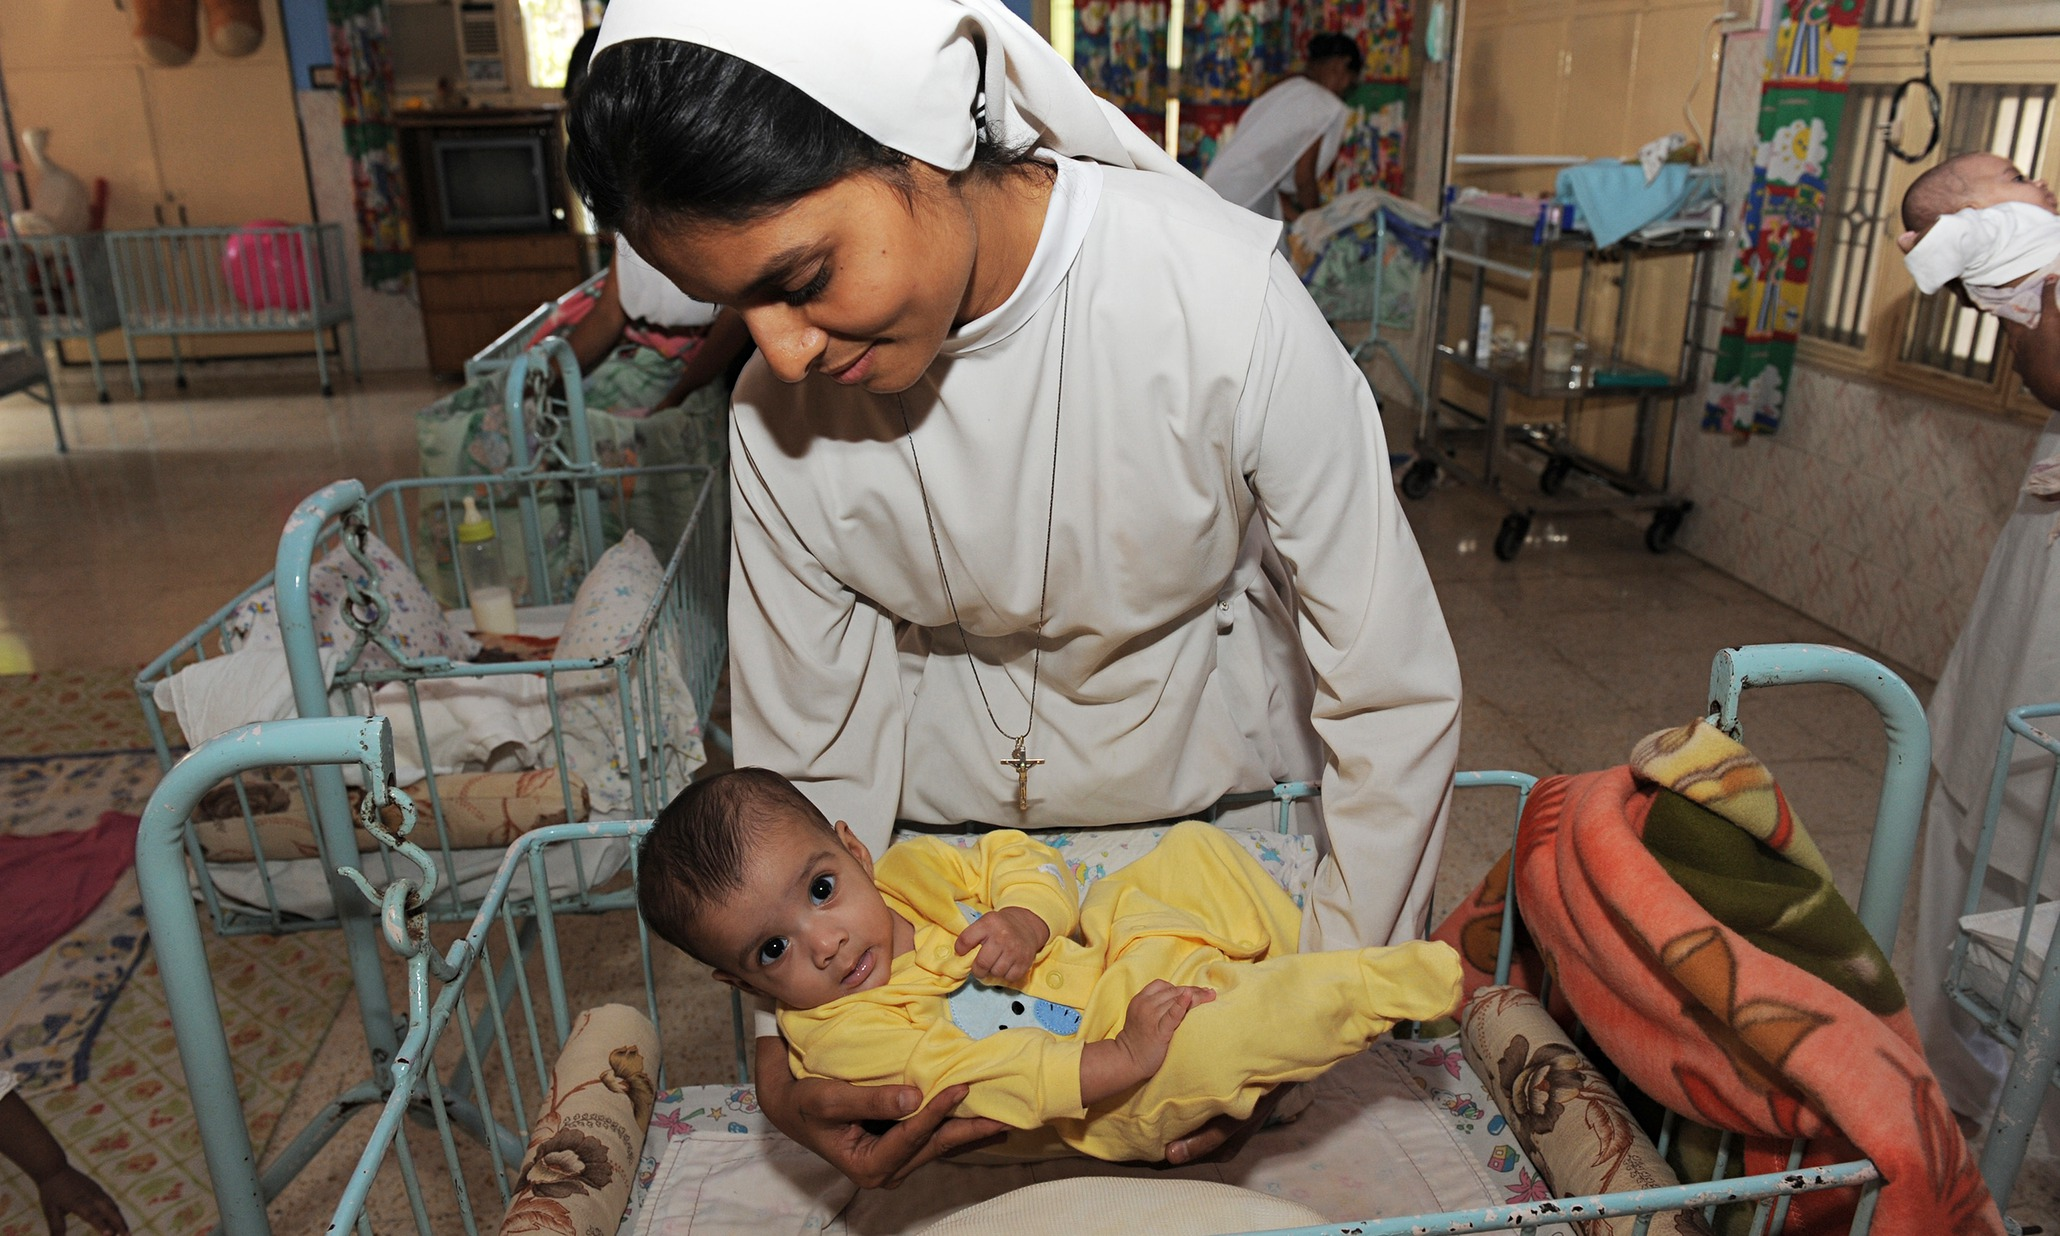 India moves to speed up adoption | World news | The Guardian